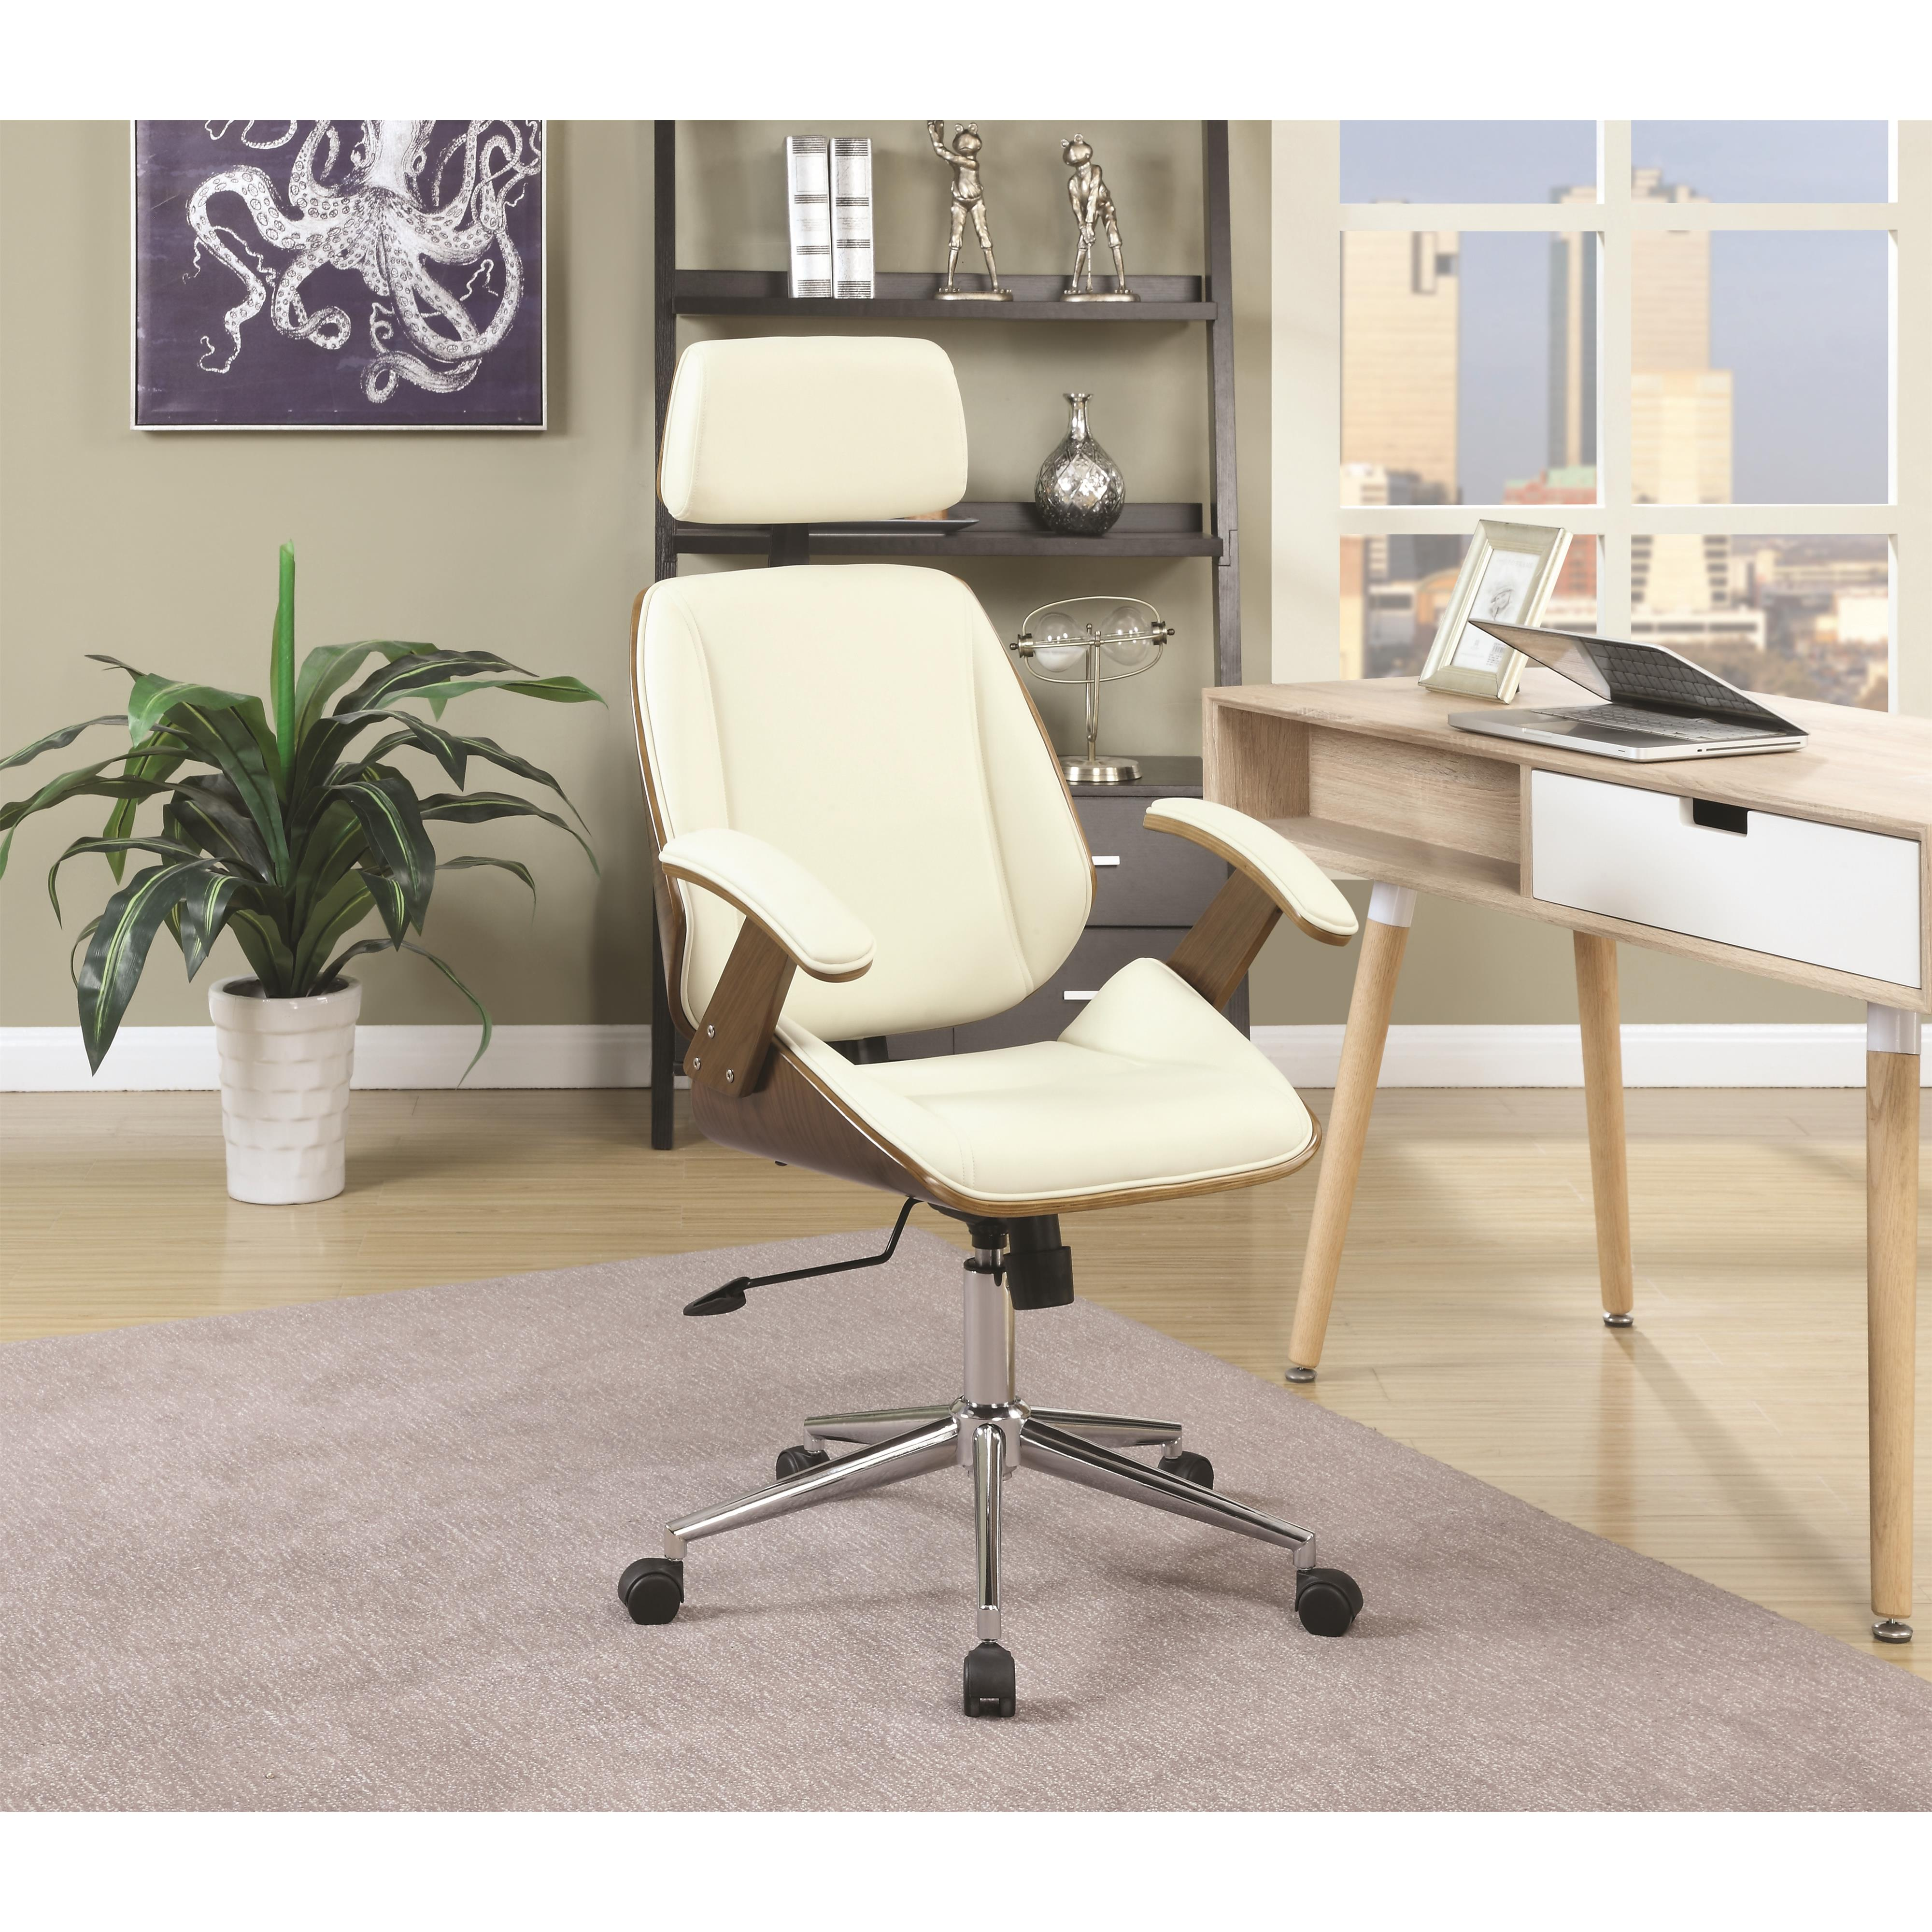 Coaster Office Chairs Office Chair - Item Number: 800735